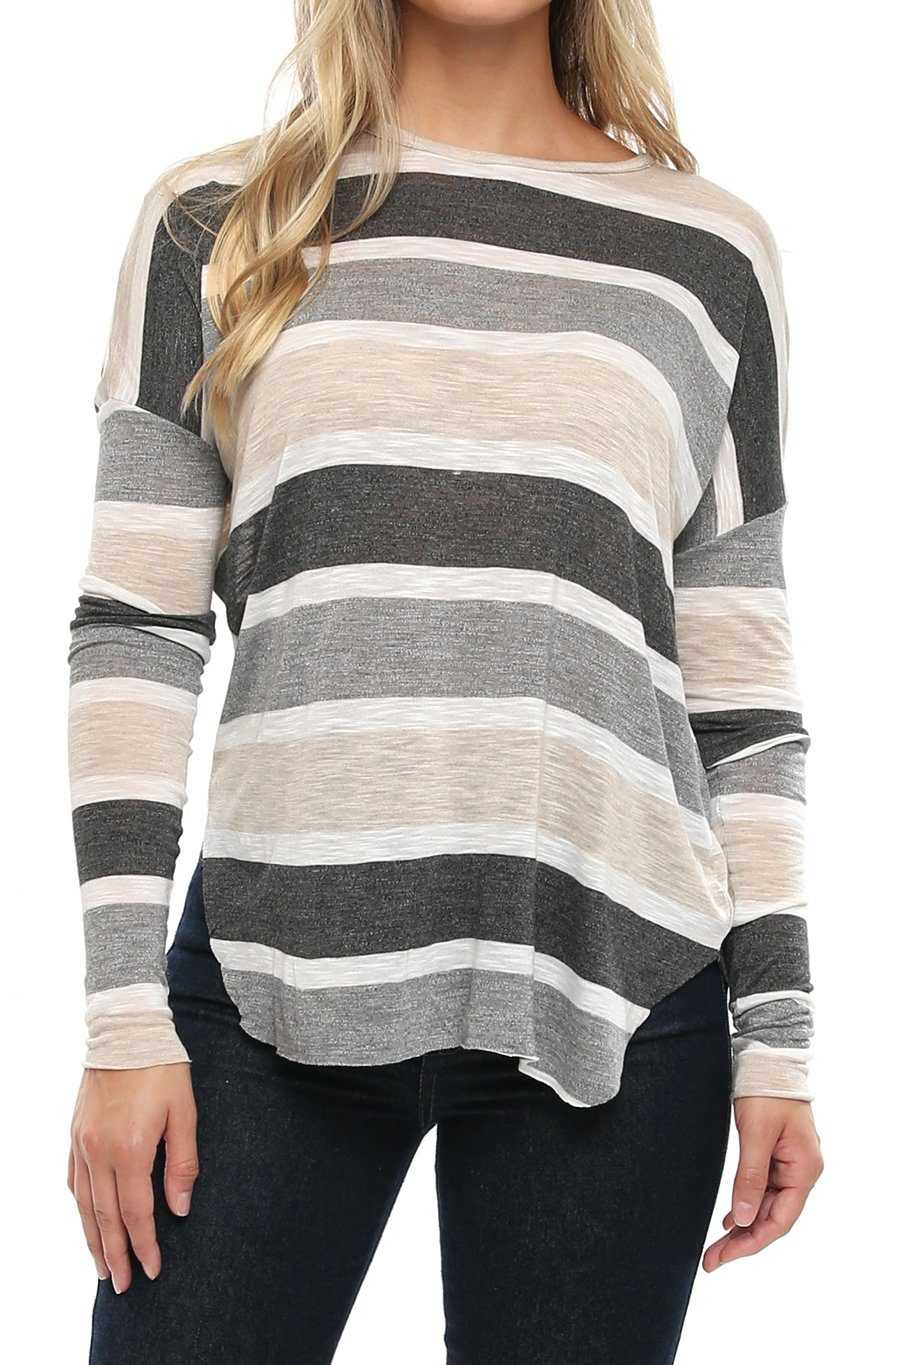 All Day Dolman Tee - Nude Stripe - Shore